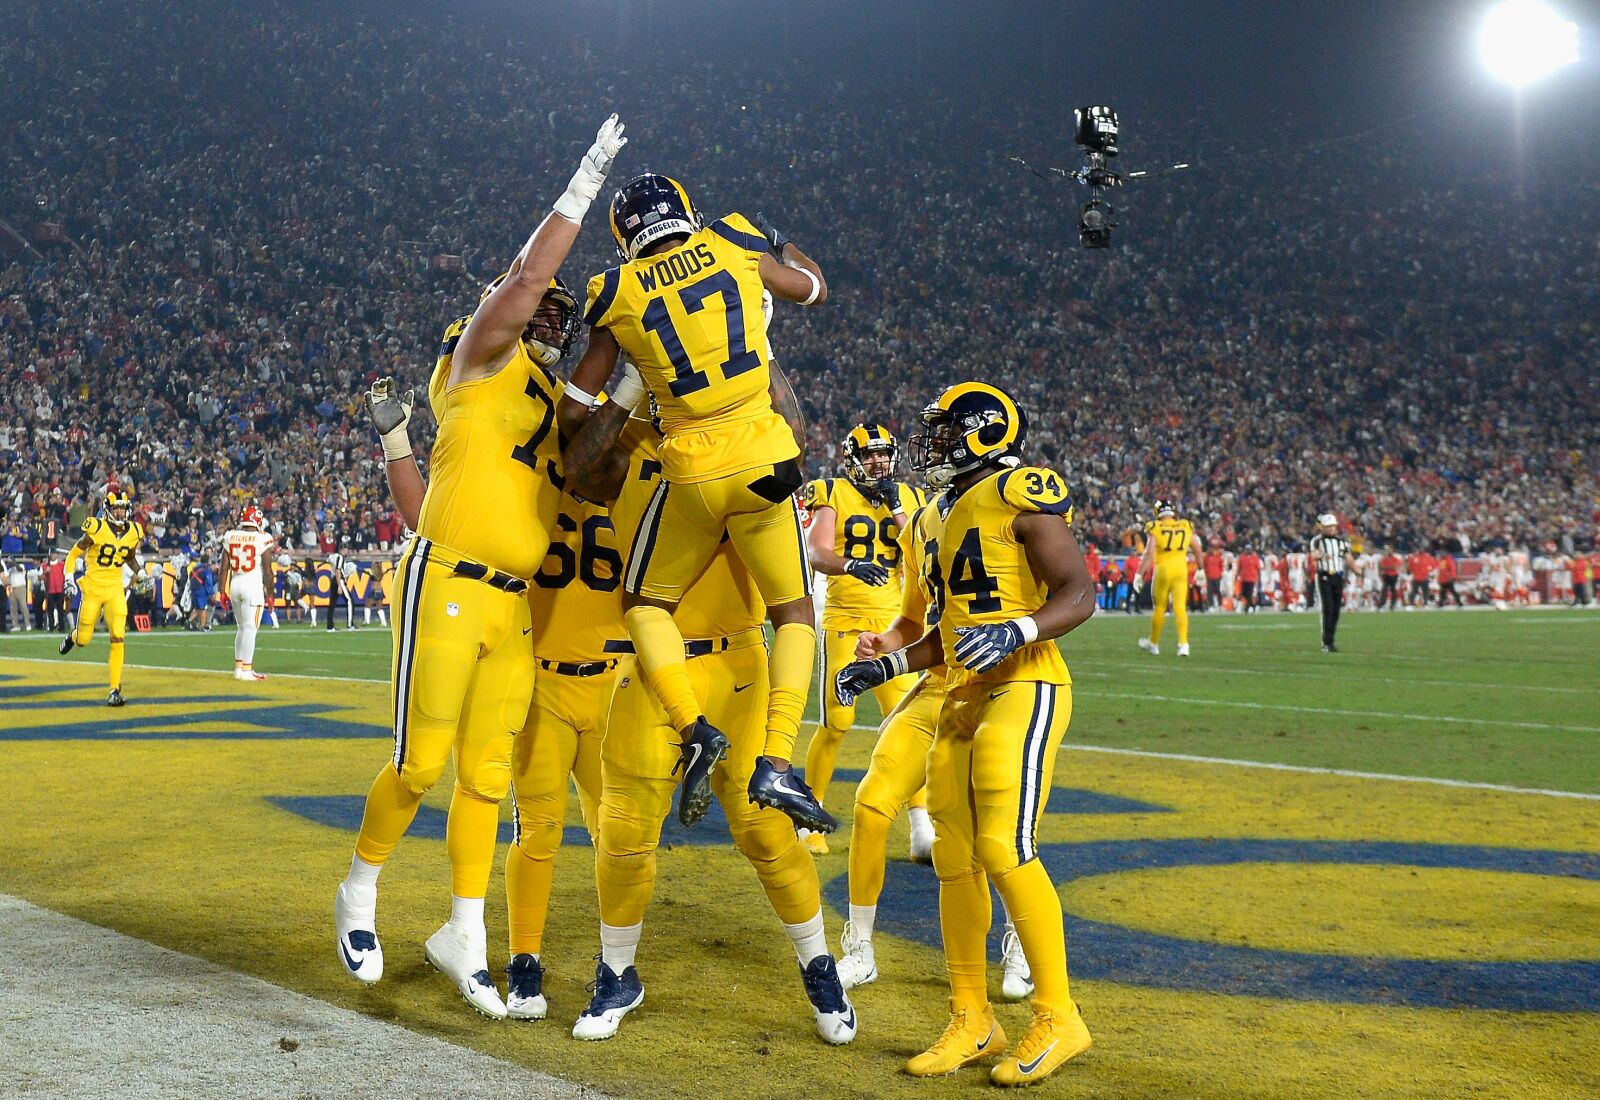 Los Angeles Rams: Fans don't need to look for excuses in case of a loss